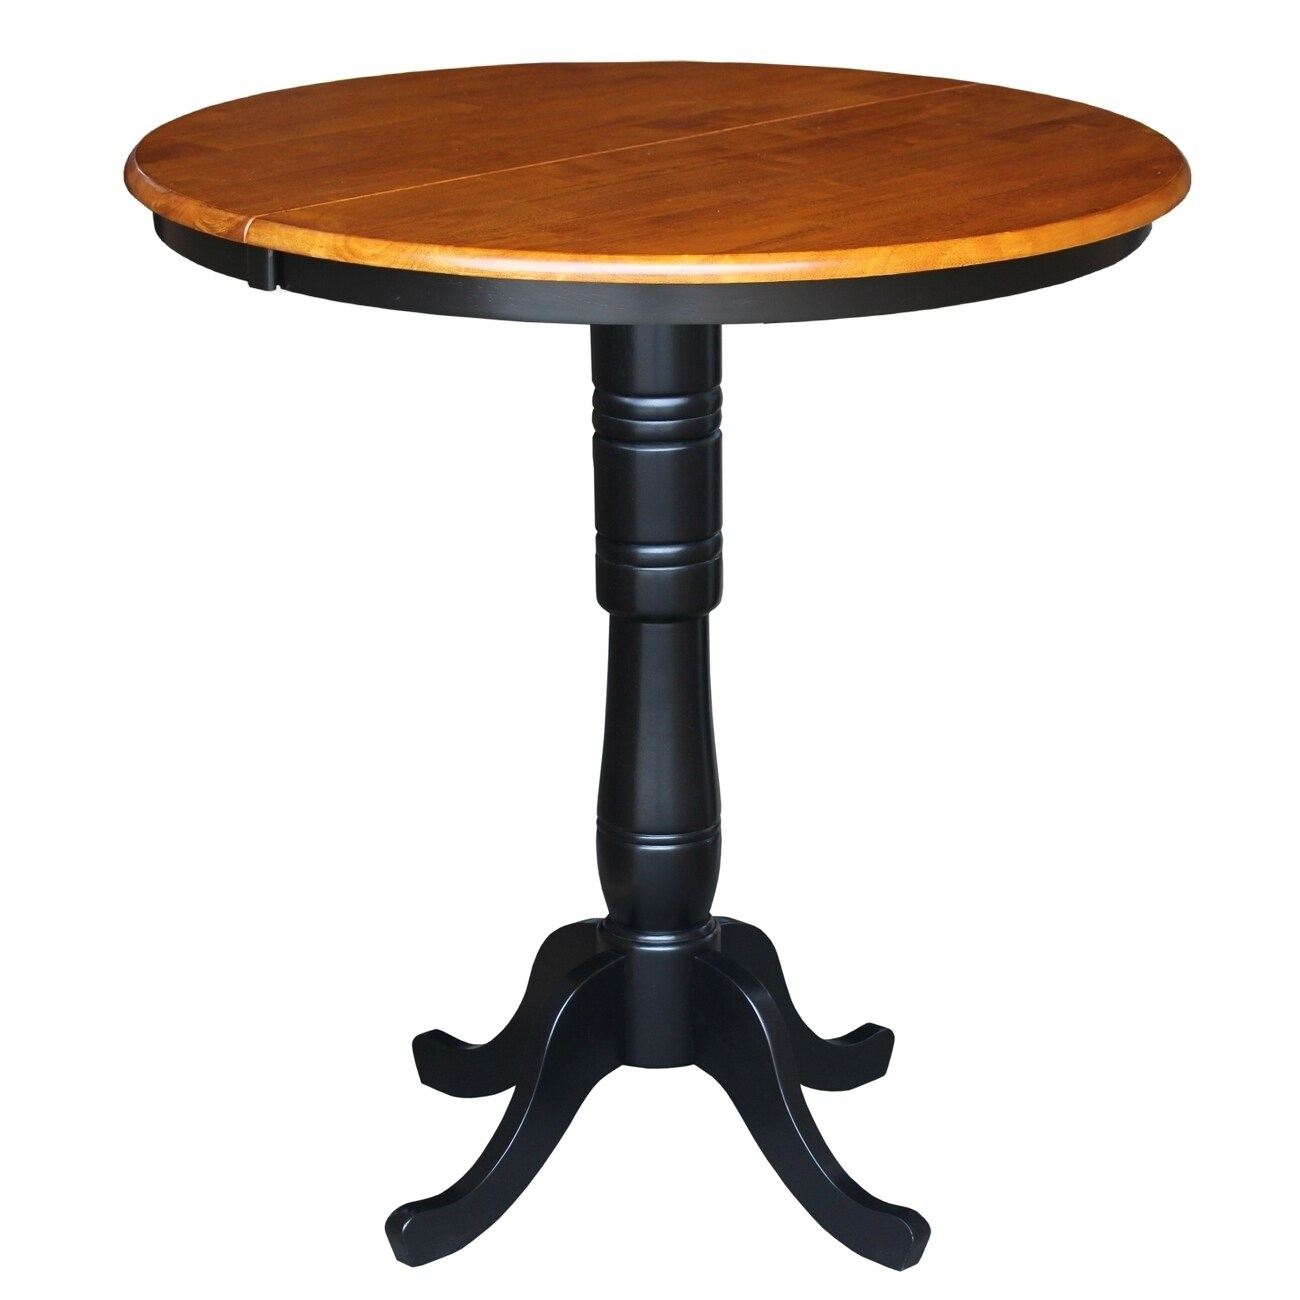 Havenside Home Knotts 36 Inch Round Dining Room Table With Two Extensions Free Shipping Today 21167069